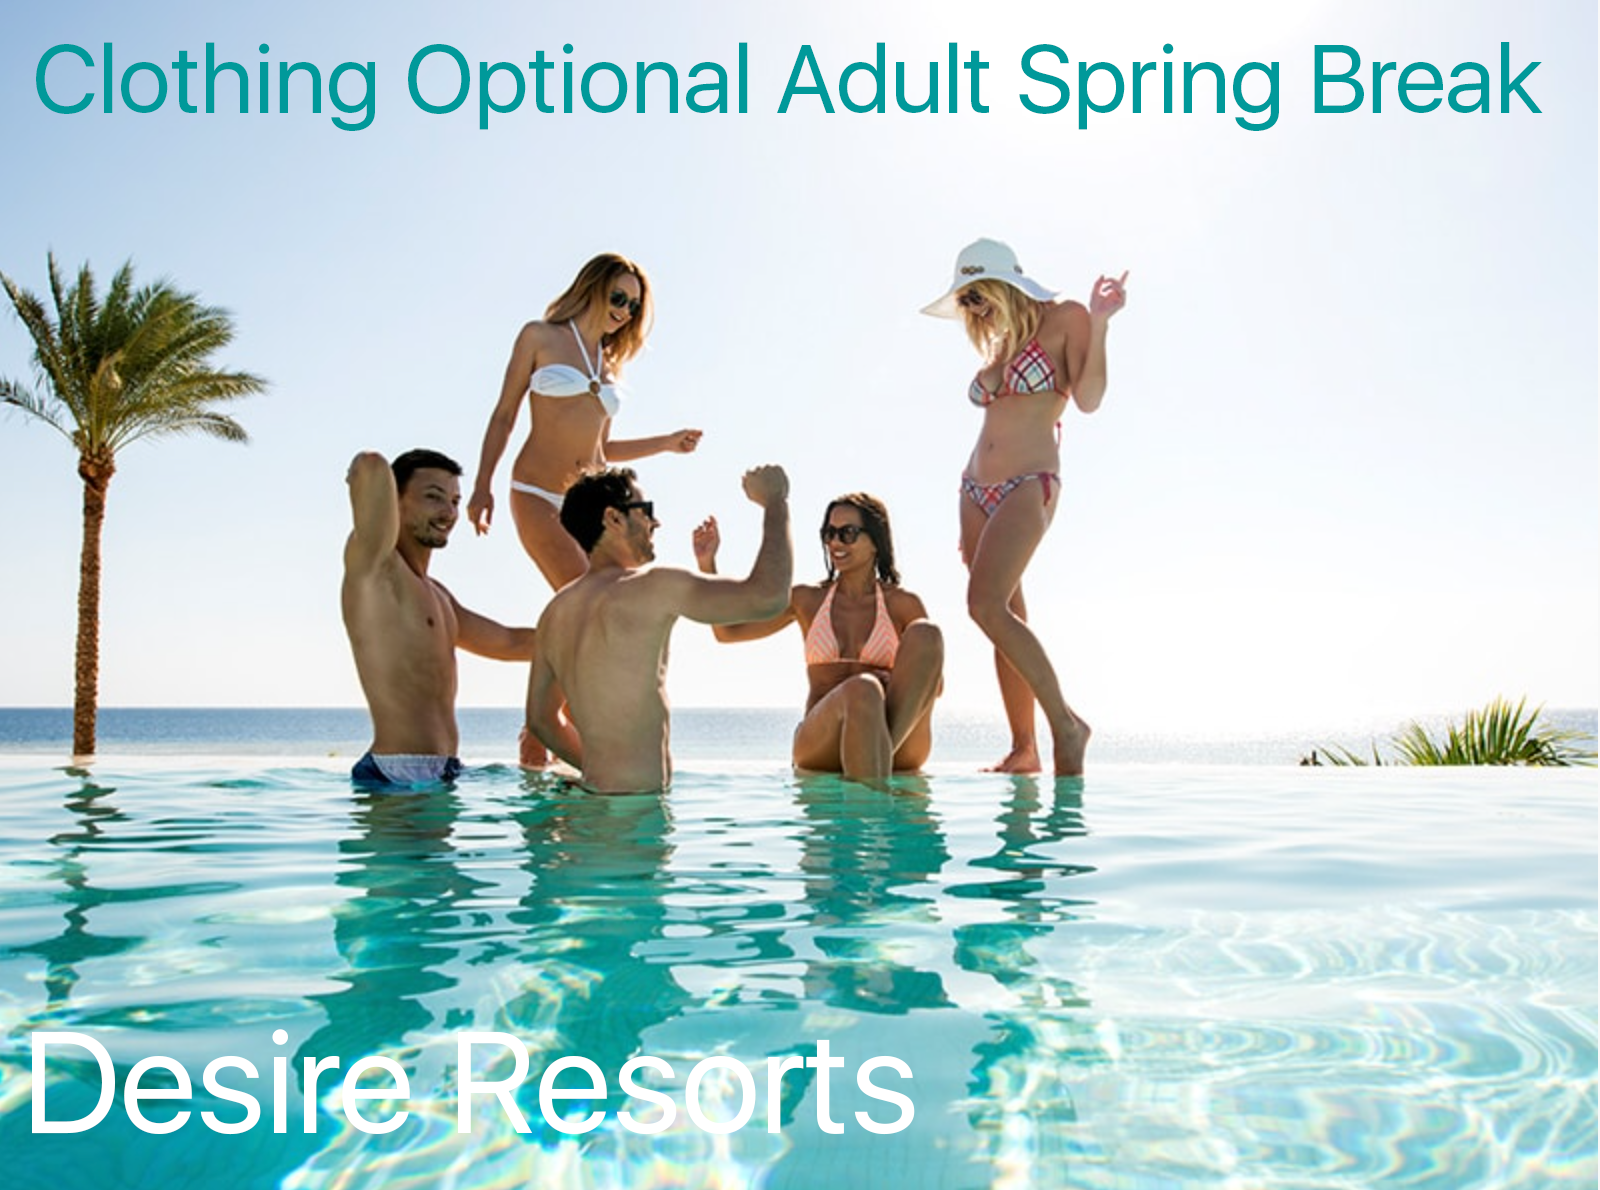 Clothing Optional Adult Spring Break